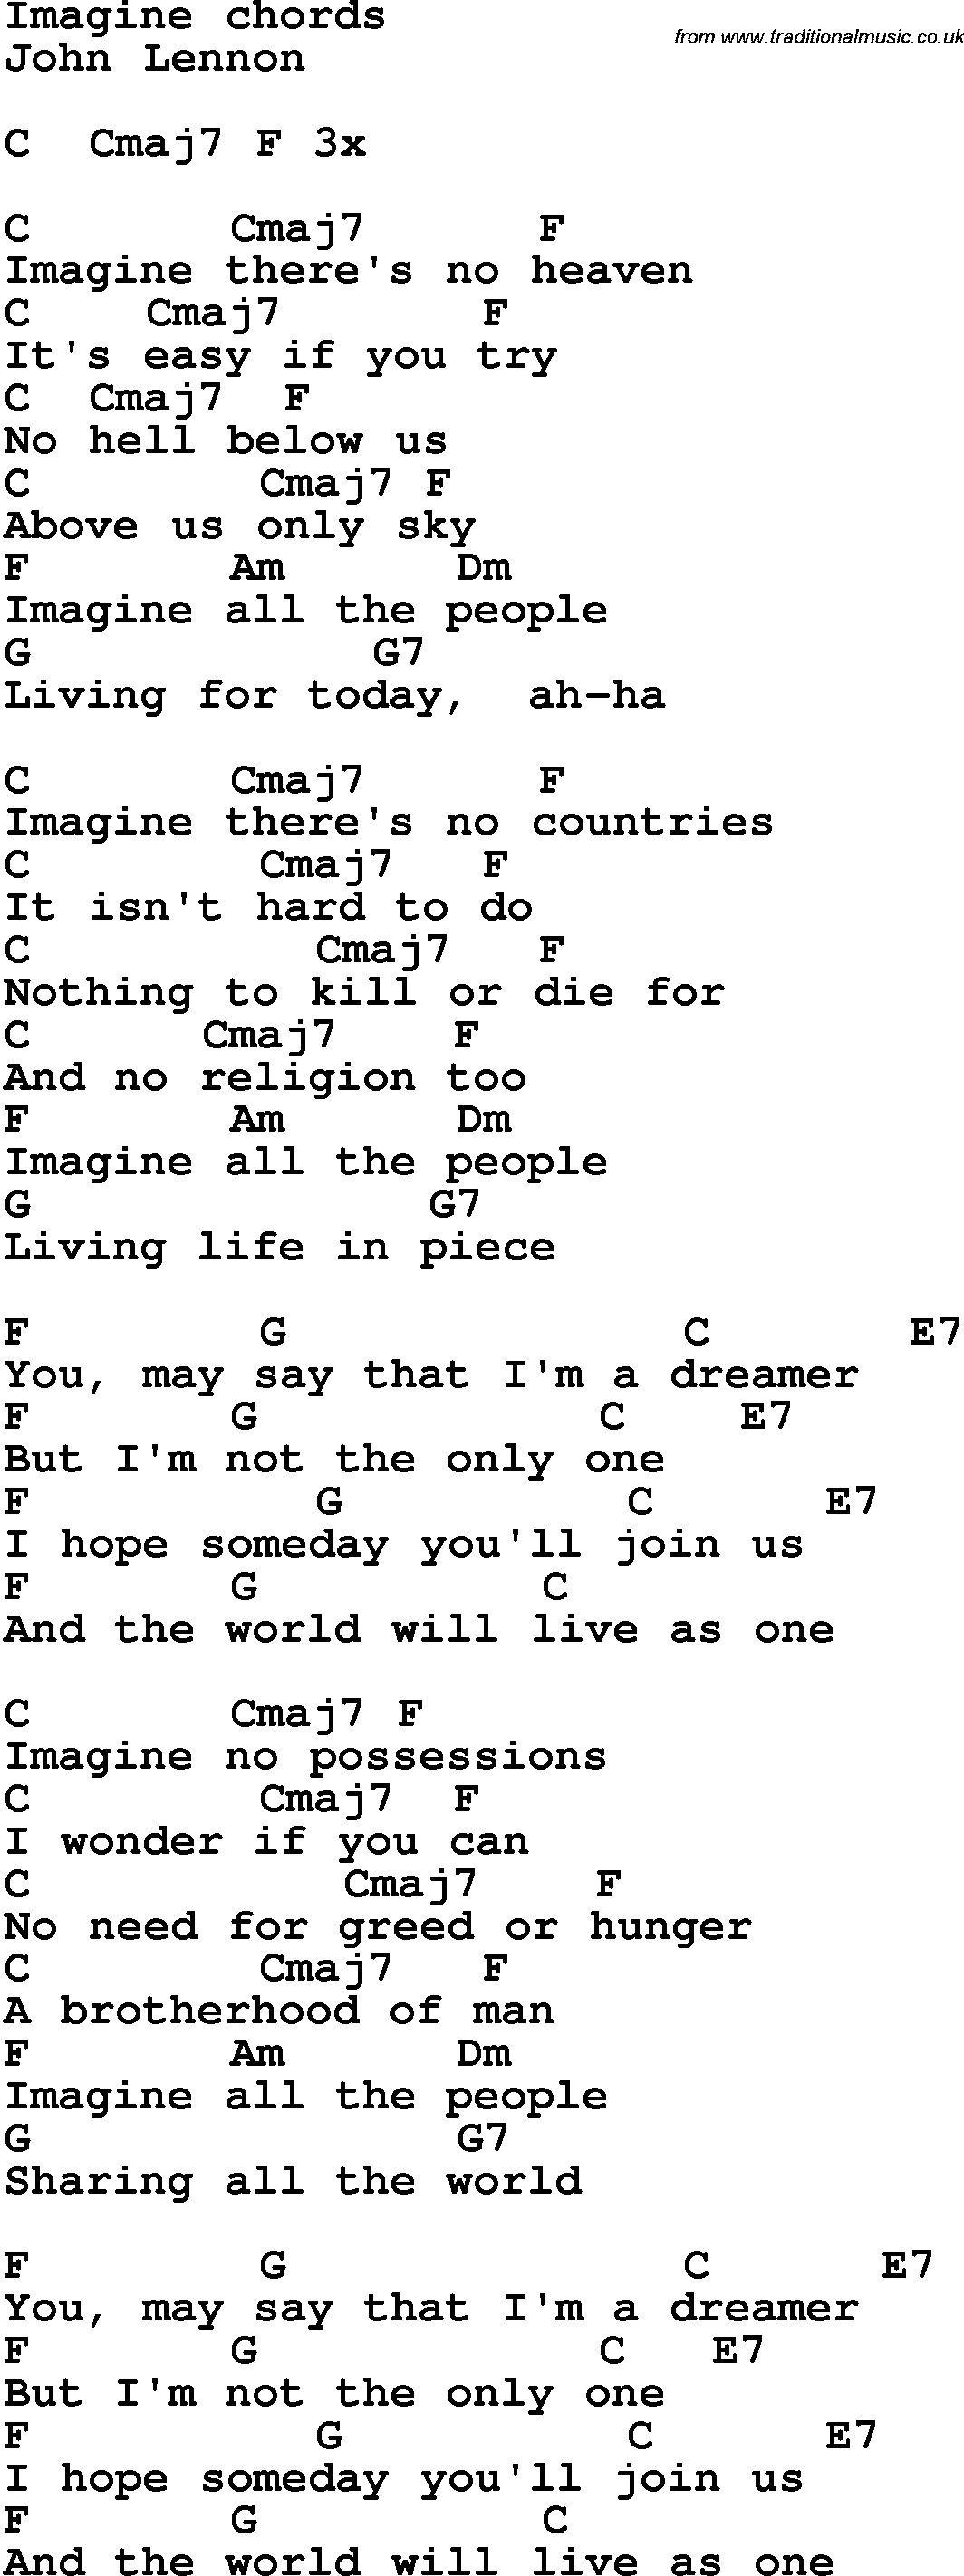 Song lyrics with guitar chords for Imagine - John Lennon